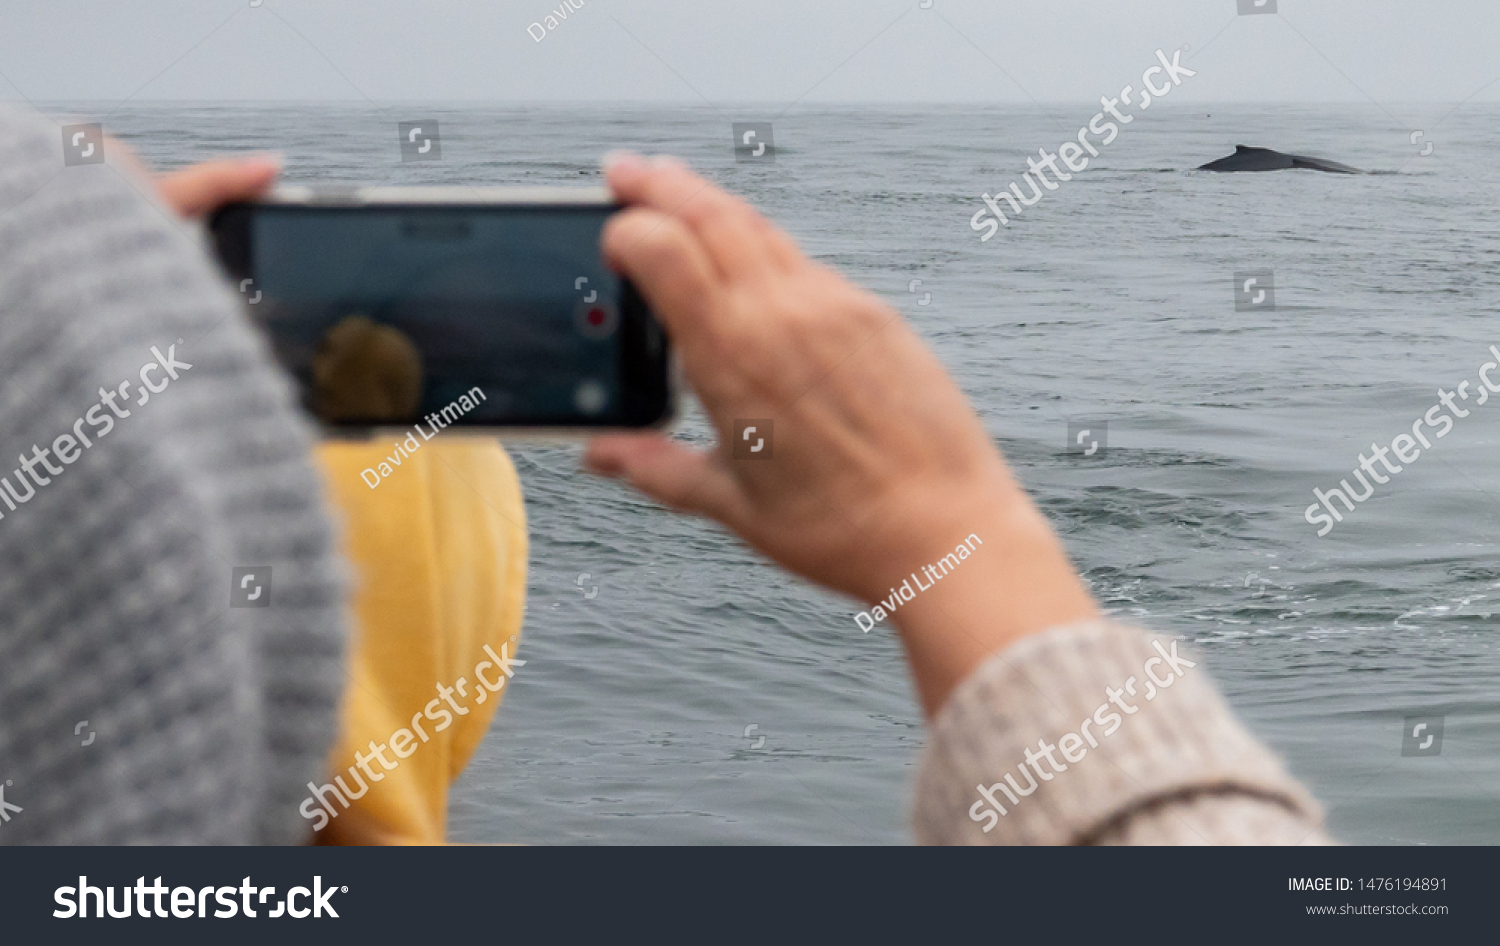 Monterey Bay, California - August 7, 2019: A tourist on a whale watching boat uses her cell phone to capture images and videos of humpback whales in the Monterey Bay of central California.